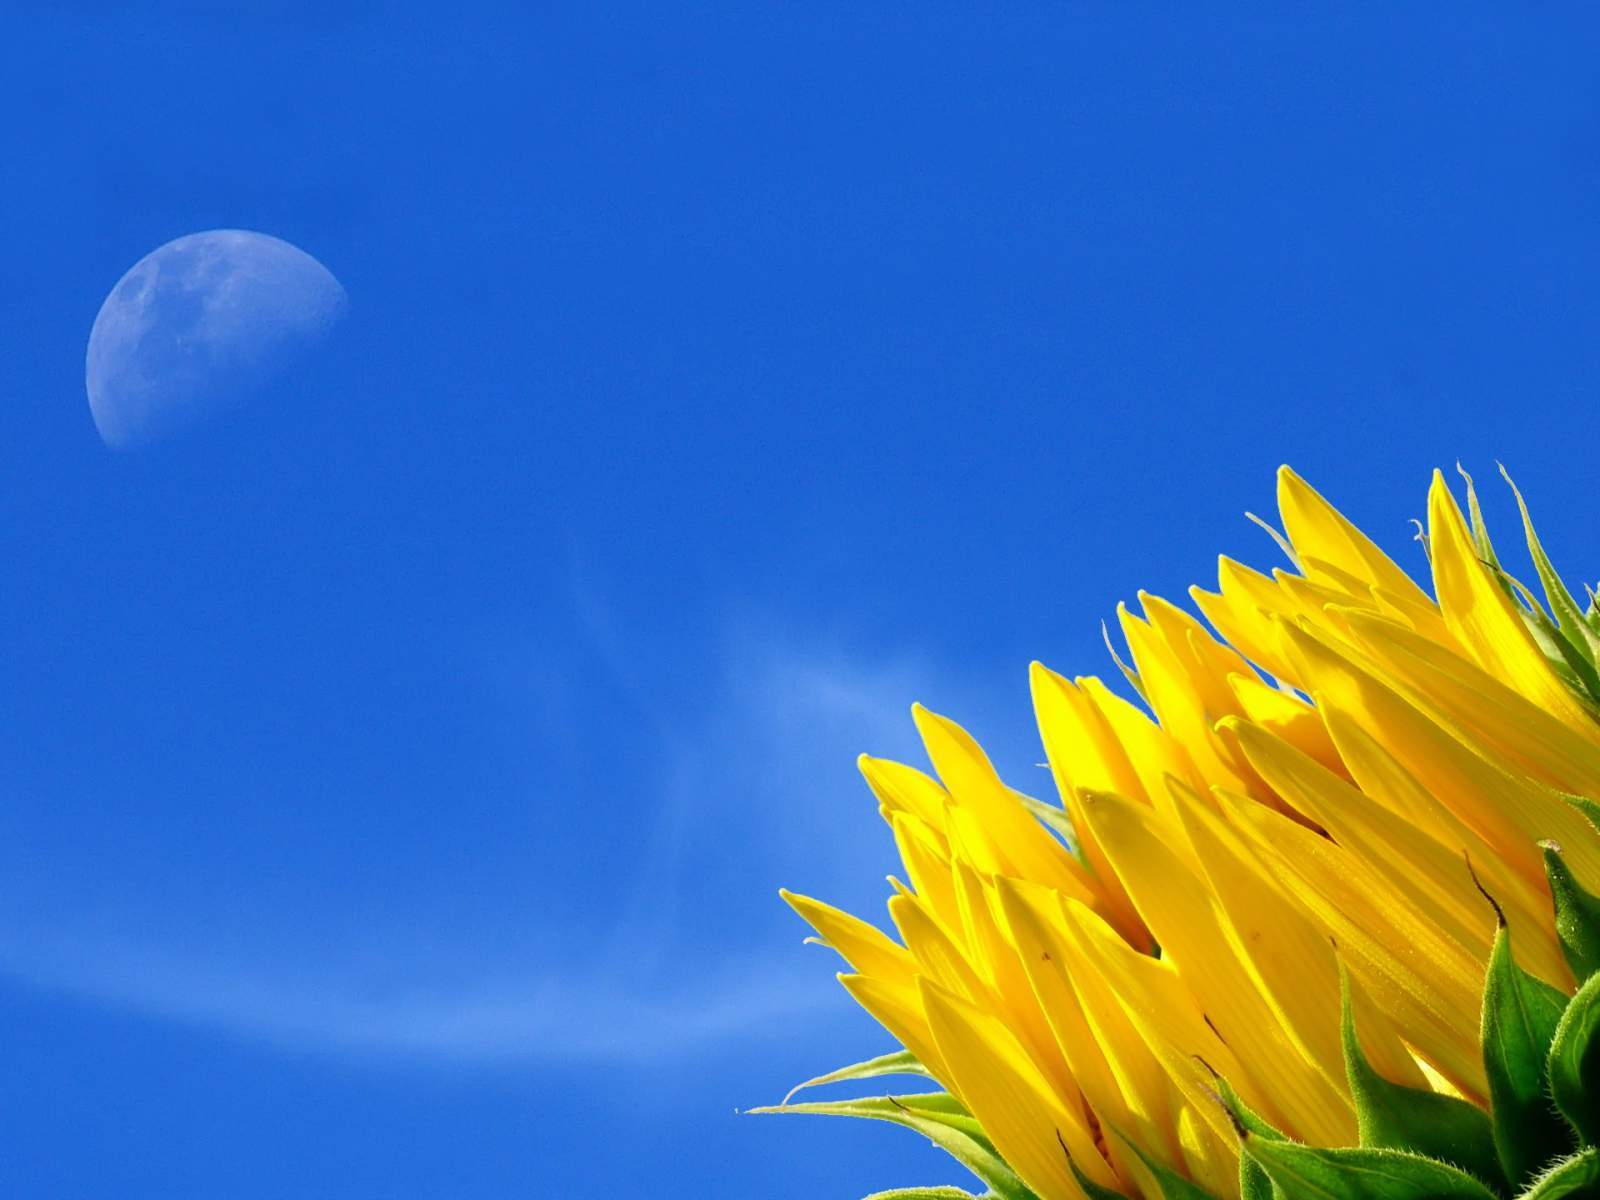 In-Yellow-Colour-Pulse-wallpaper-wpc58010065